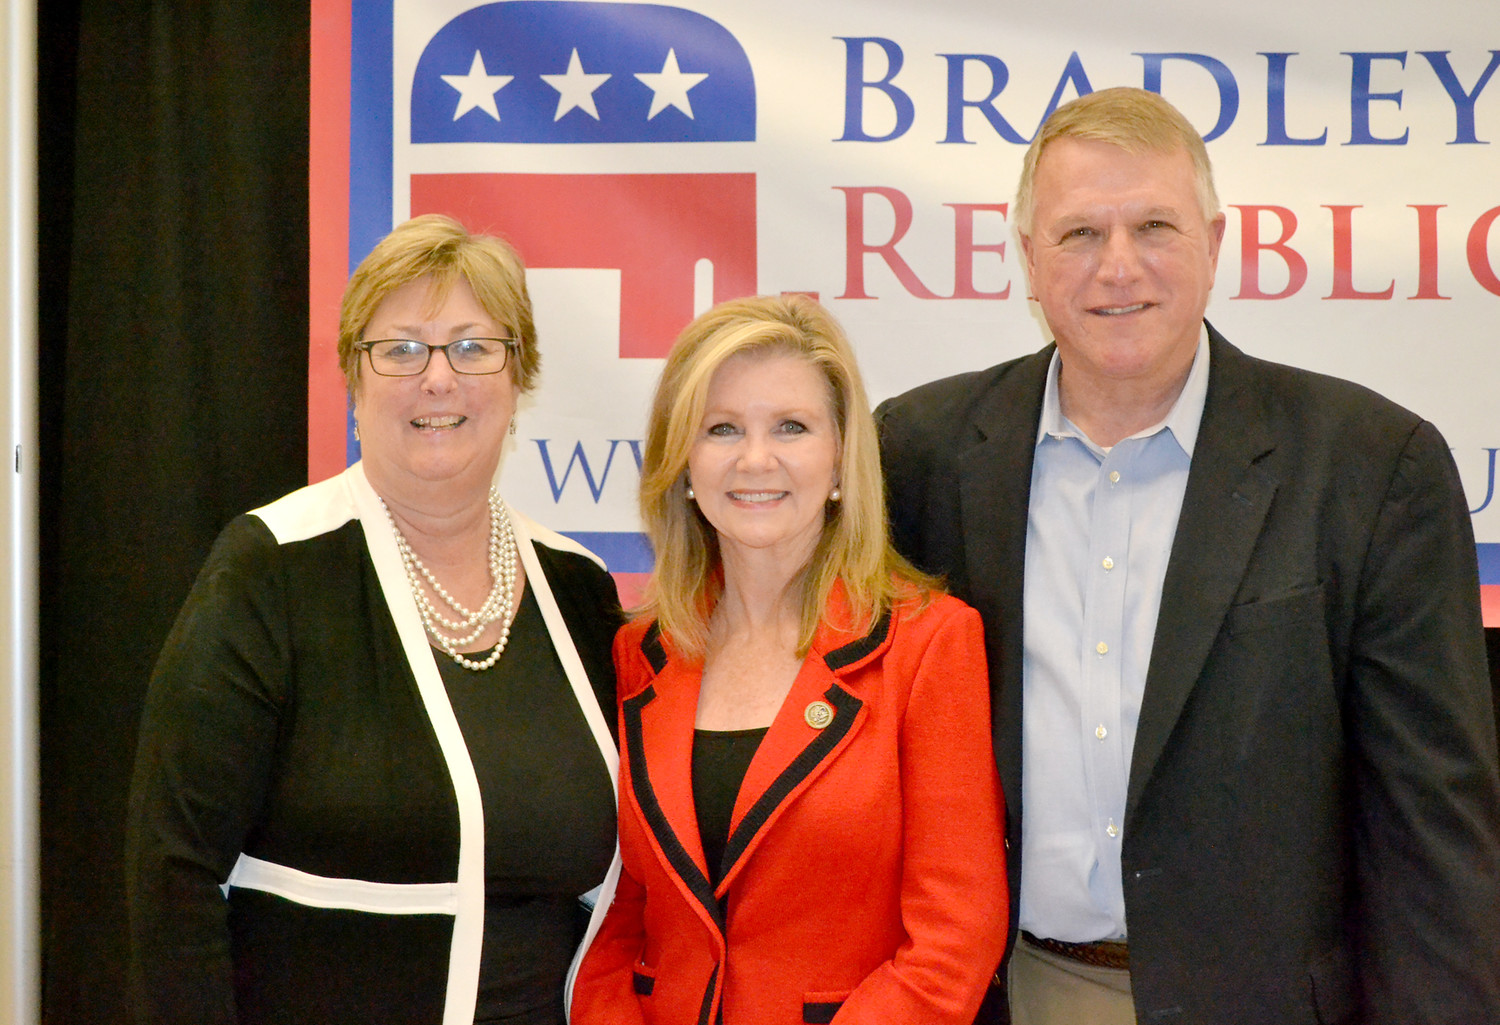 REPUBLICAN CHAIRMAN Richard Burnette and his wife, Malinda, took time following Saturday's Reagan Day Dinner for a photograph with keynote speaker Marsha Blackburn, center.